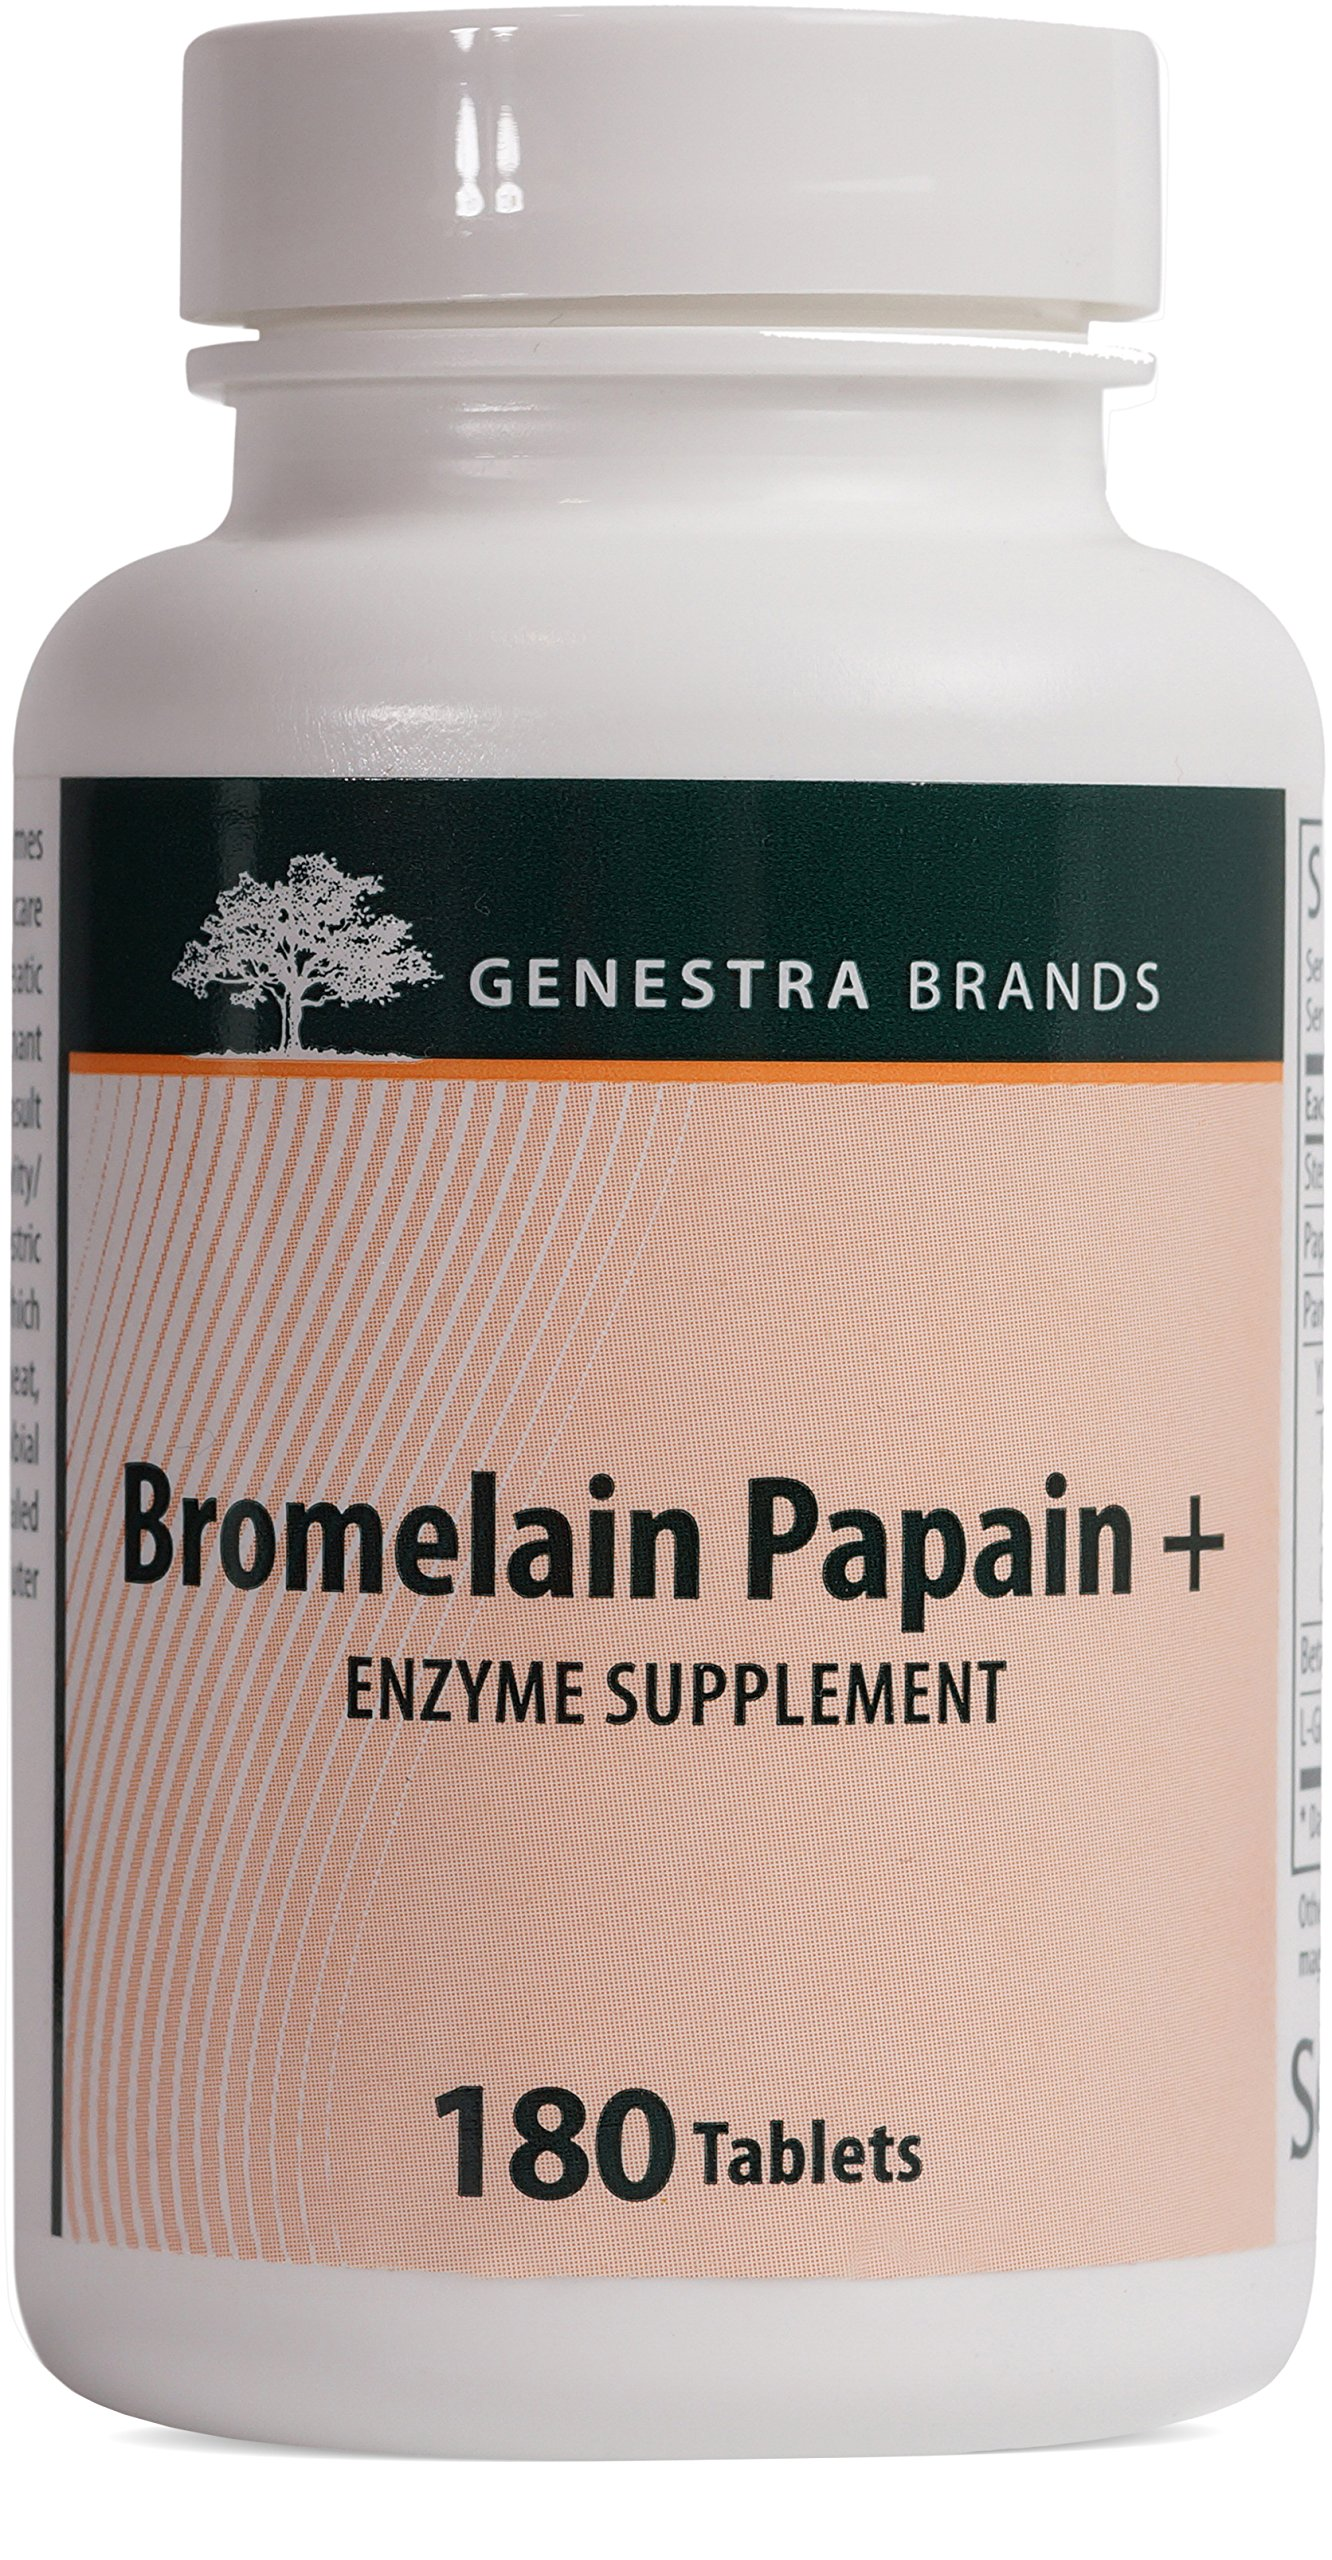 Genestra Brands - Bromelain Papain + - Multi Enzymatic Formulation in Tablet Format - 180 Tablets